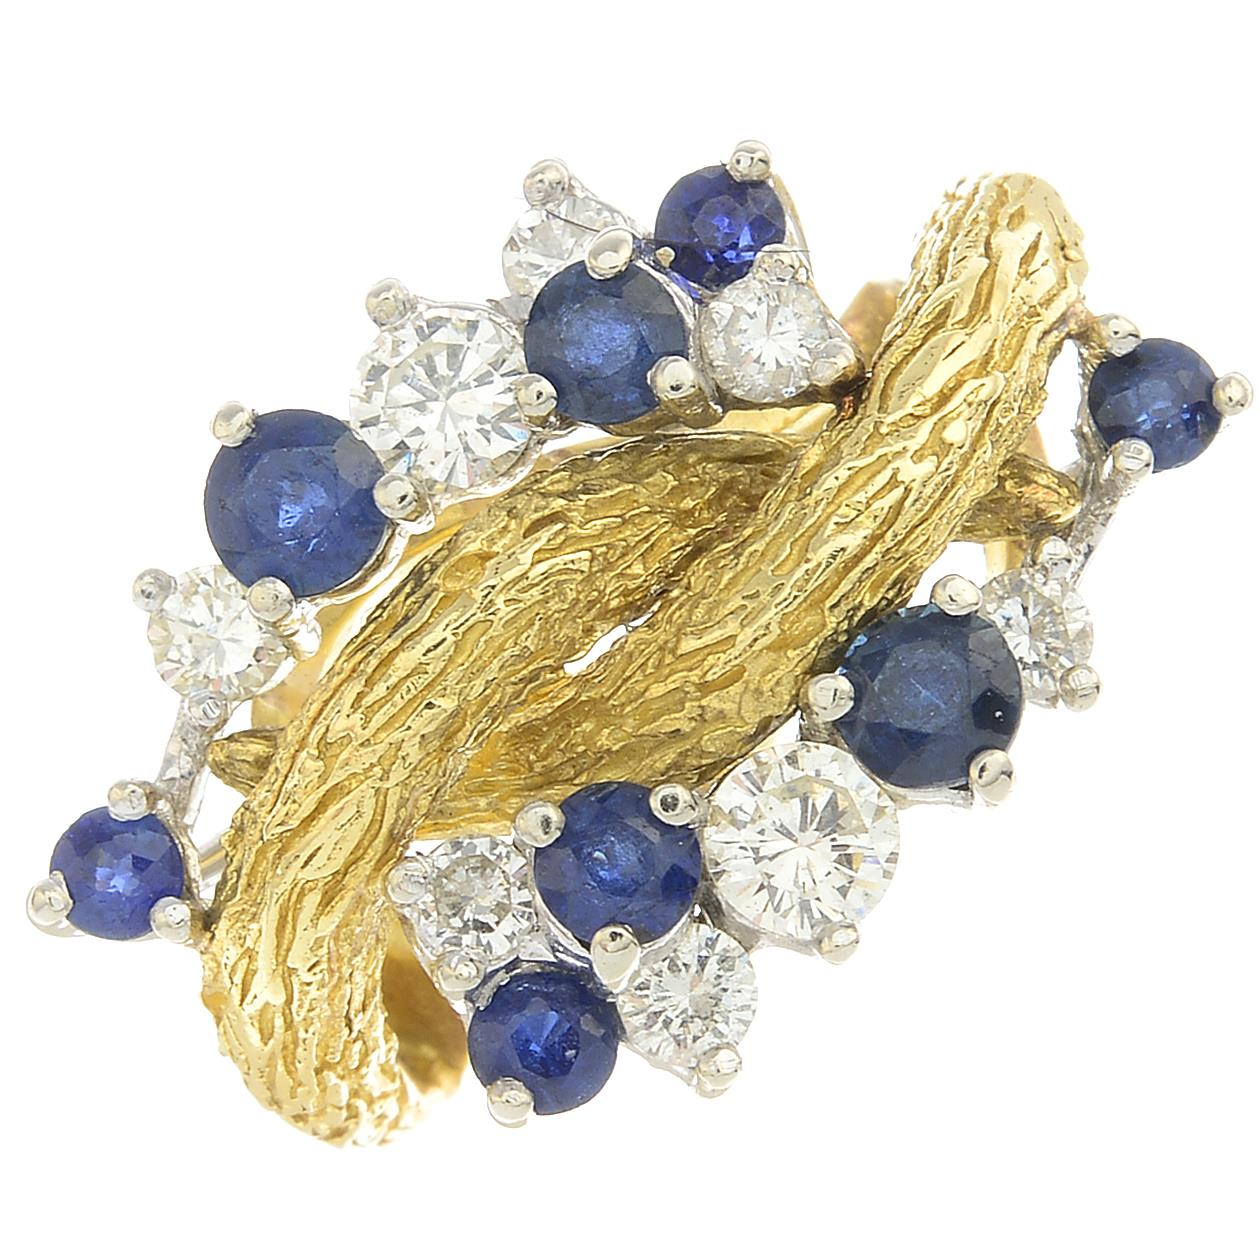 Lot 28 - A diamond and sapphire dress ring.Estimated total diamond weight 0.35ct,